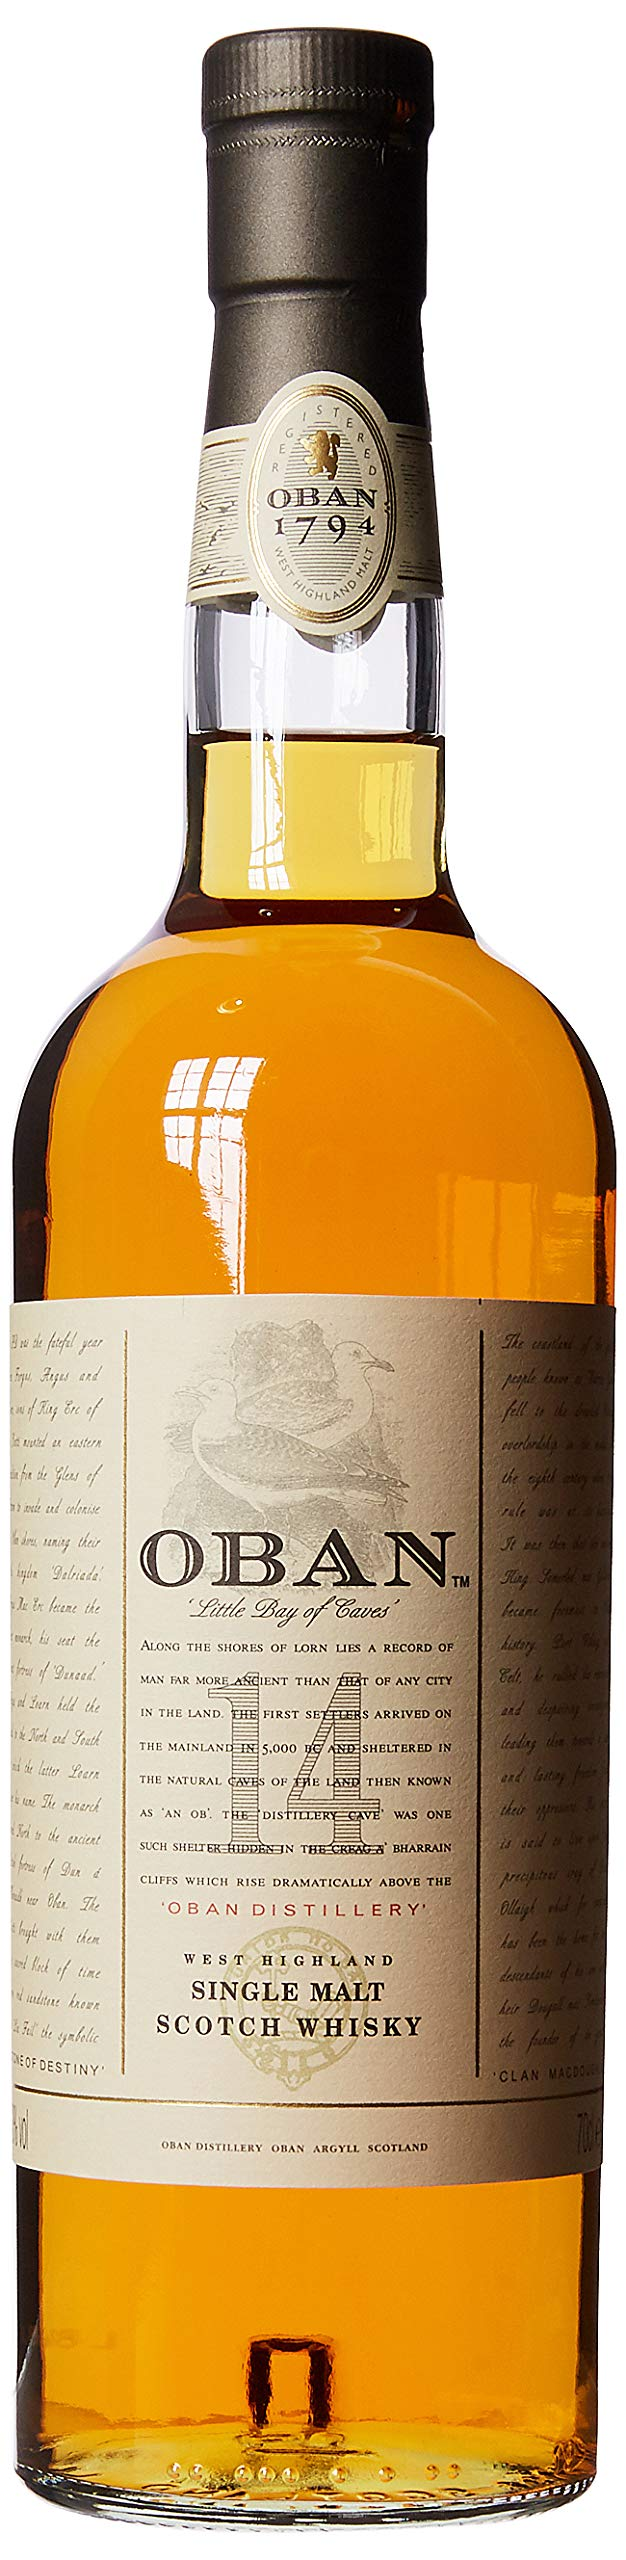 Oban 14 Year Old – Single Malt Scotch Whisky – From the shores of Highland – Scotch with smoky taste and hints of orange – 70cl